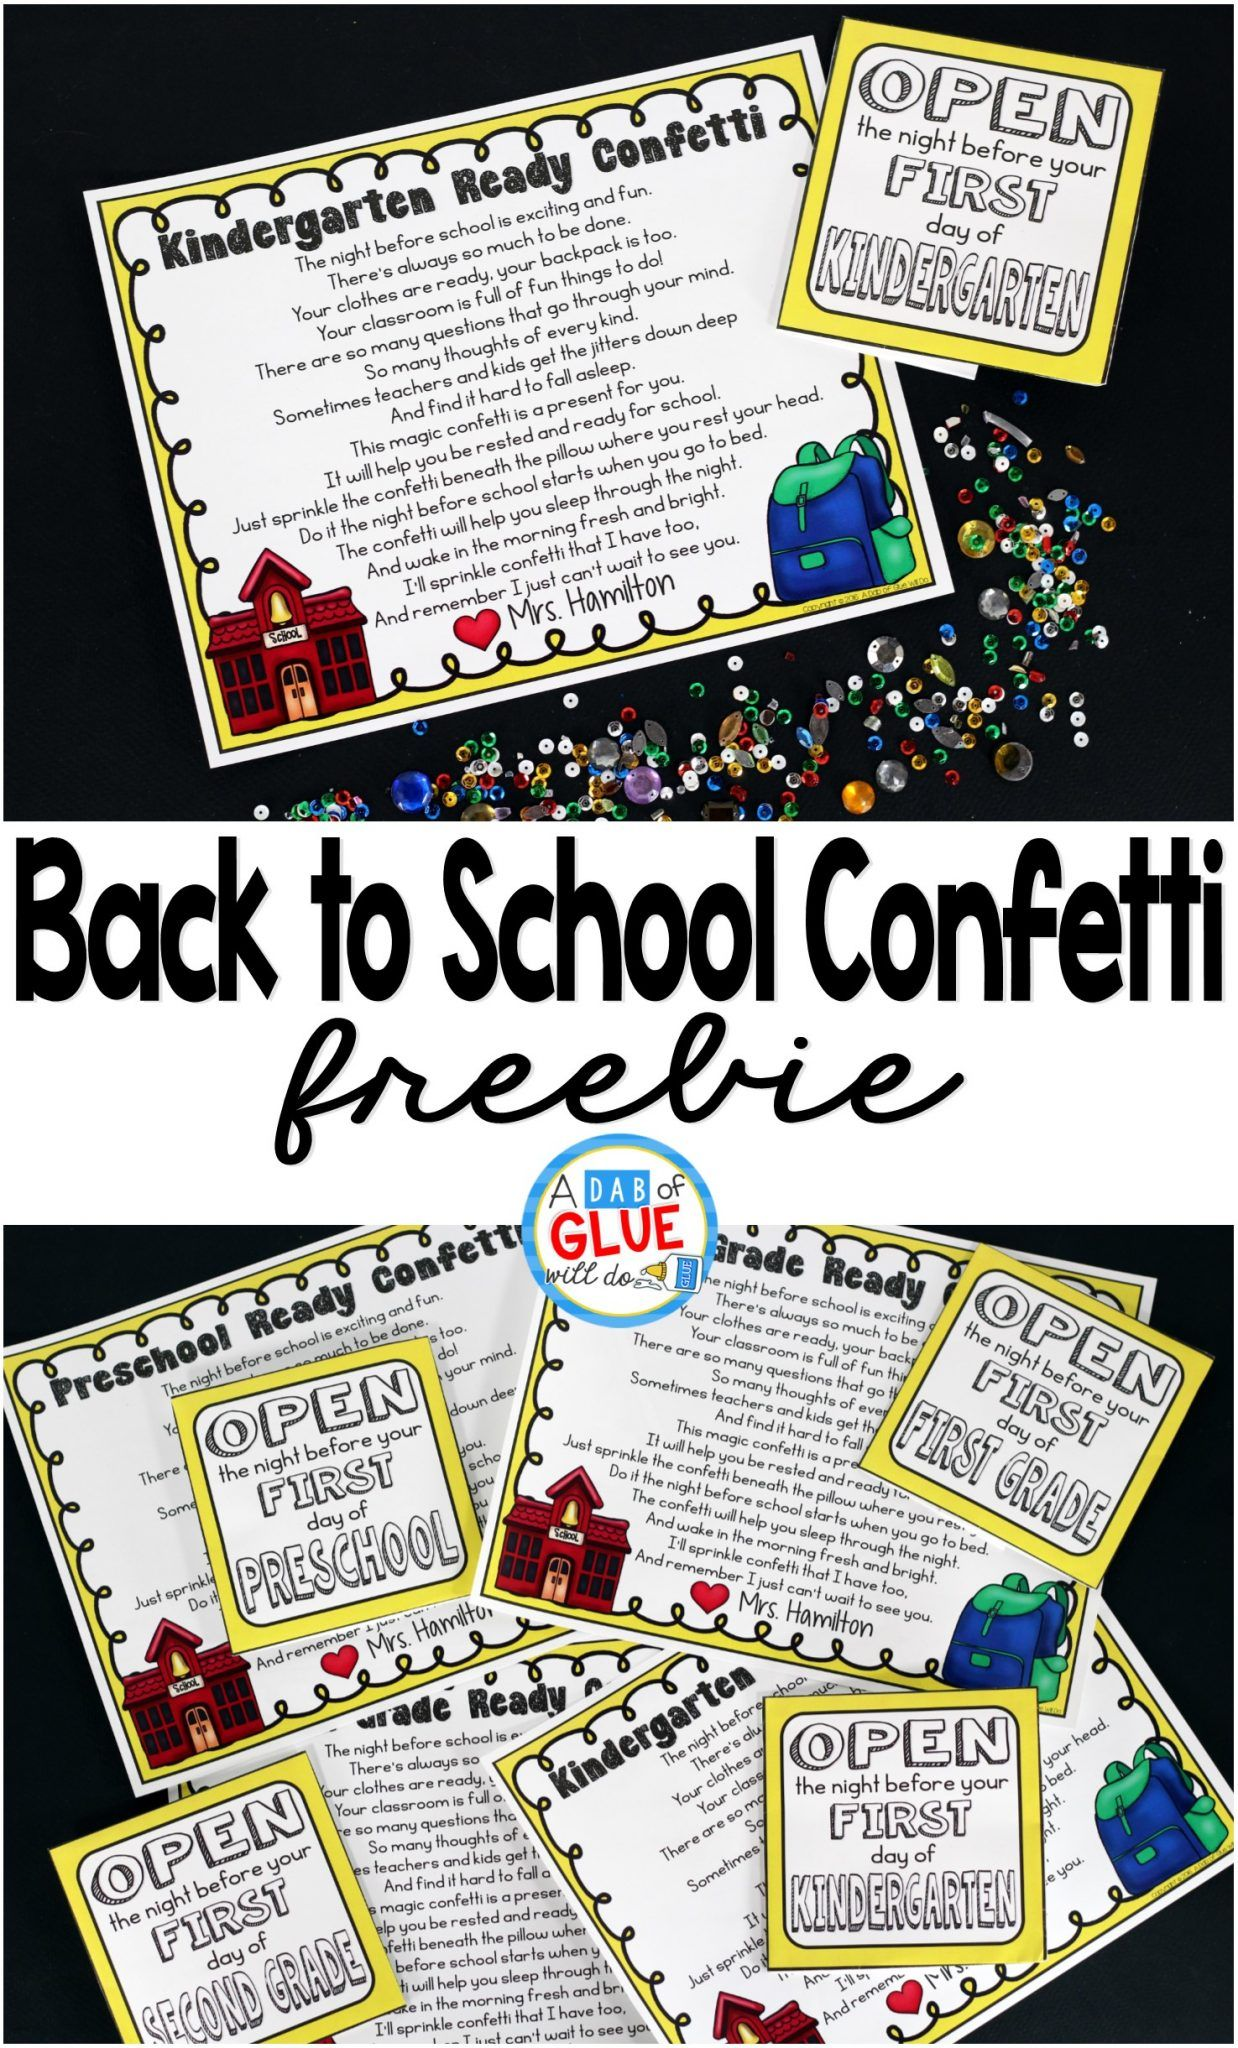 Back To School Confetti